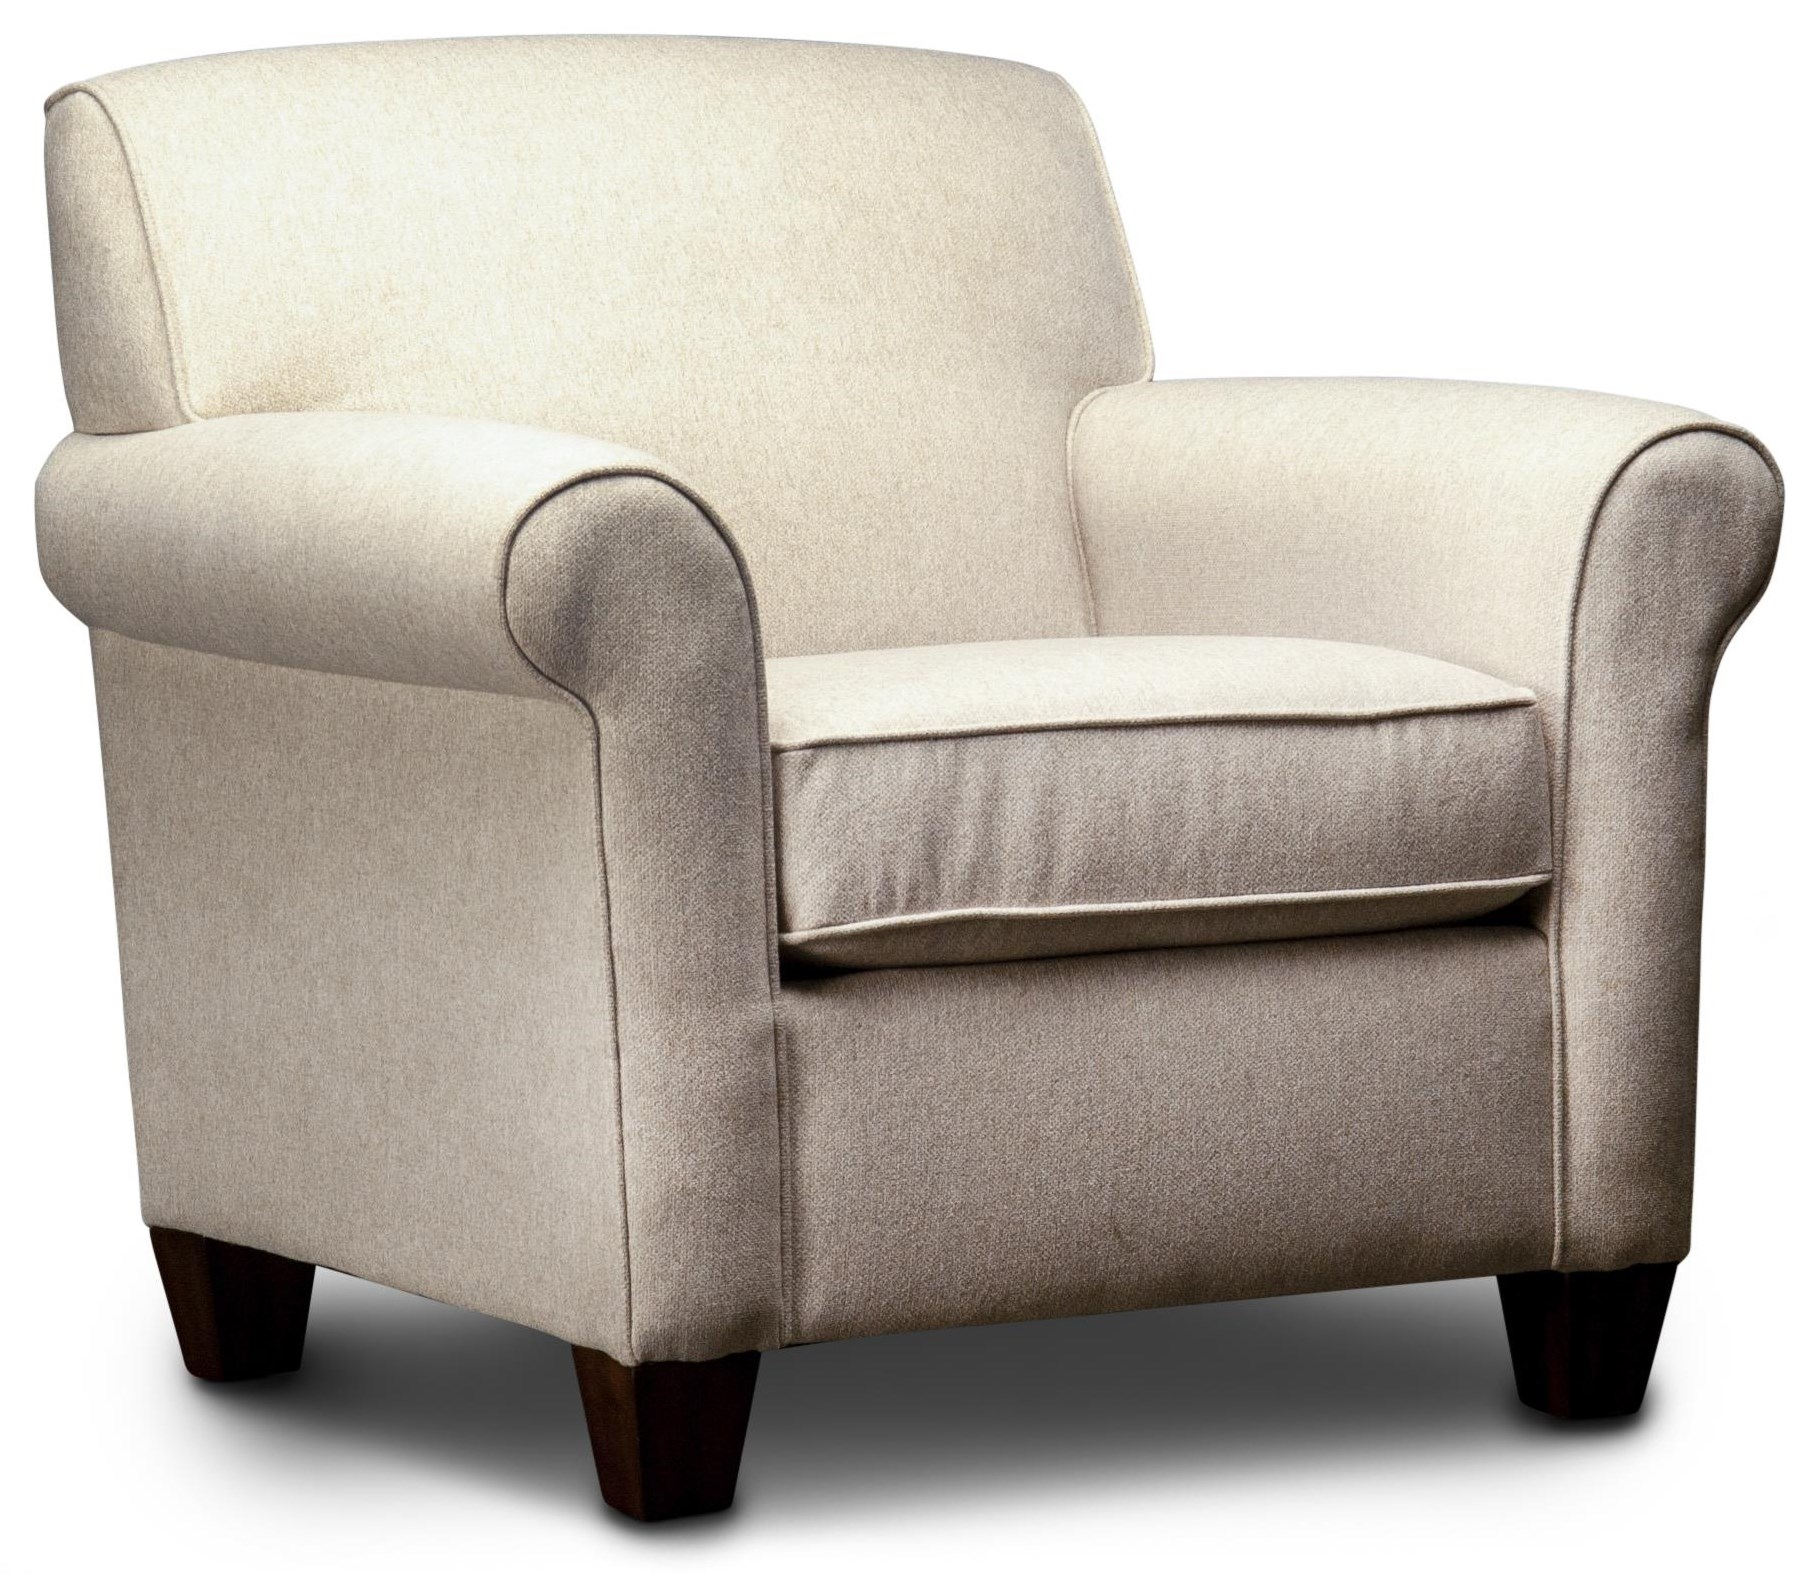 Remus Remus Accent Chair by Flexsteel Wynwood Collection at Morris Home